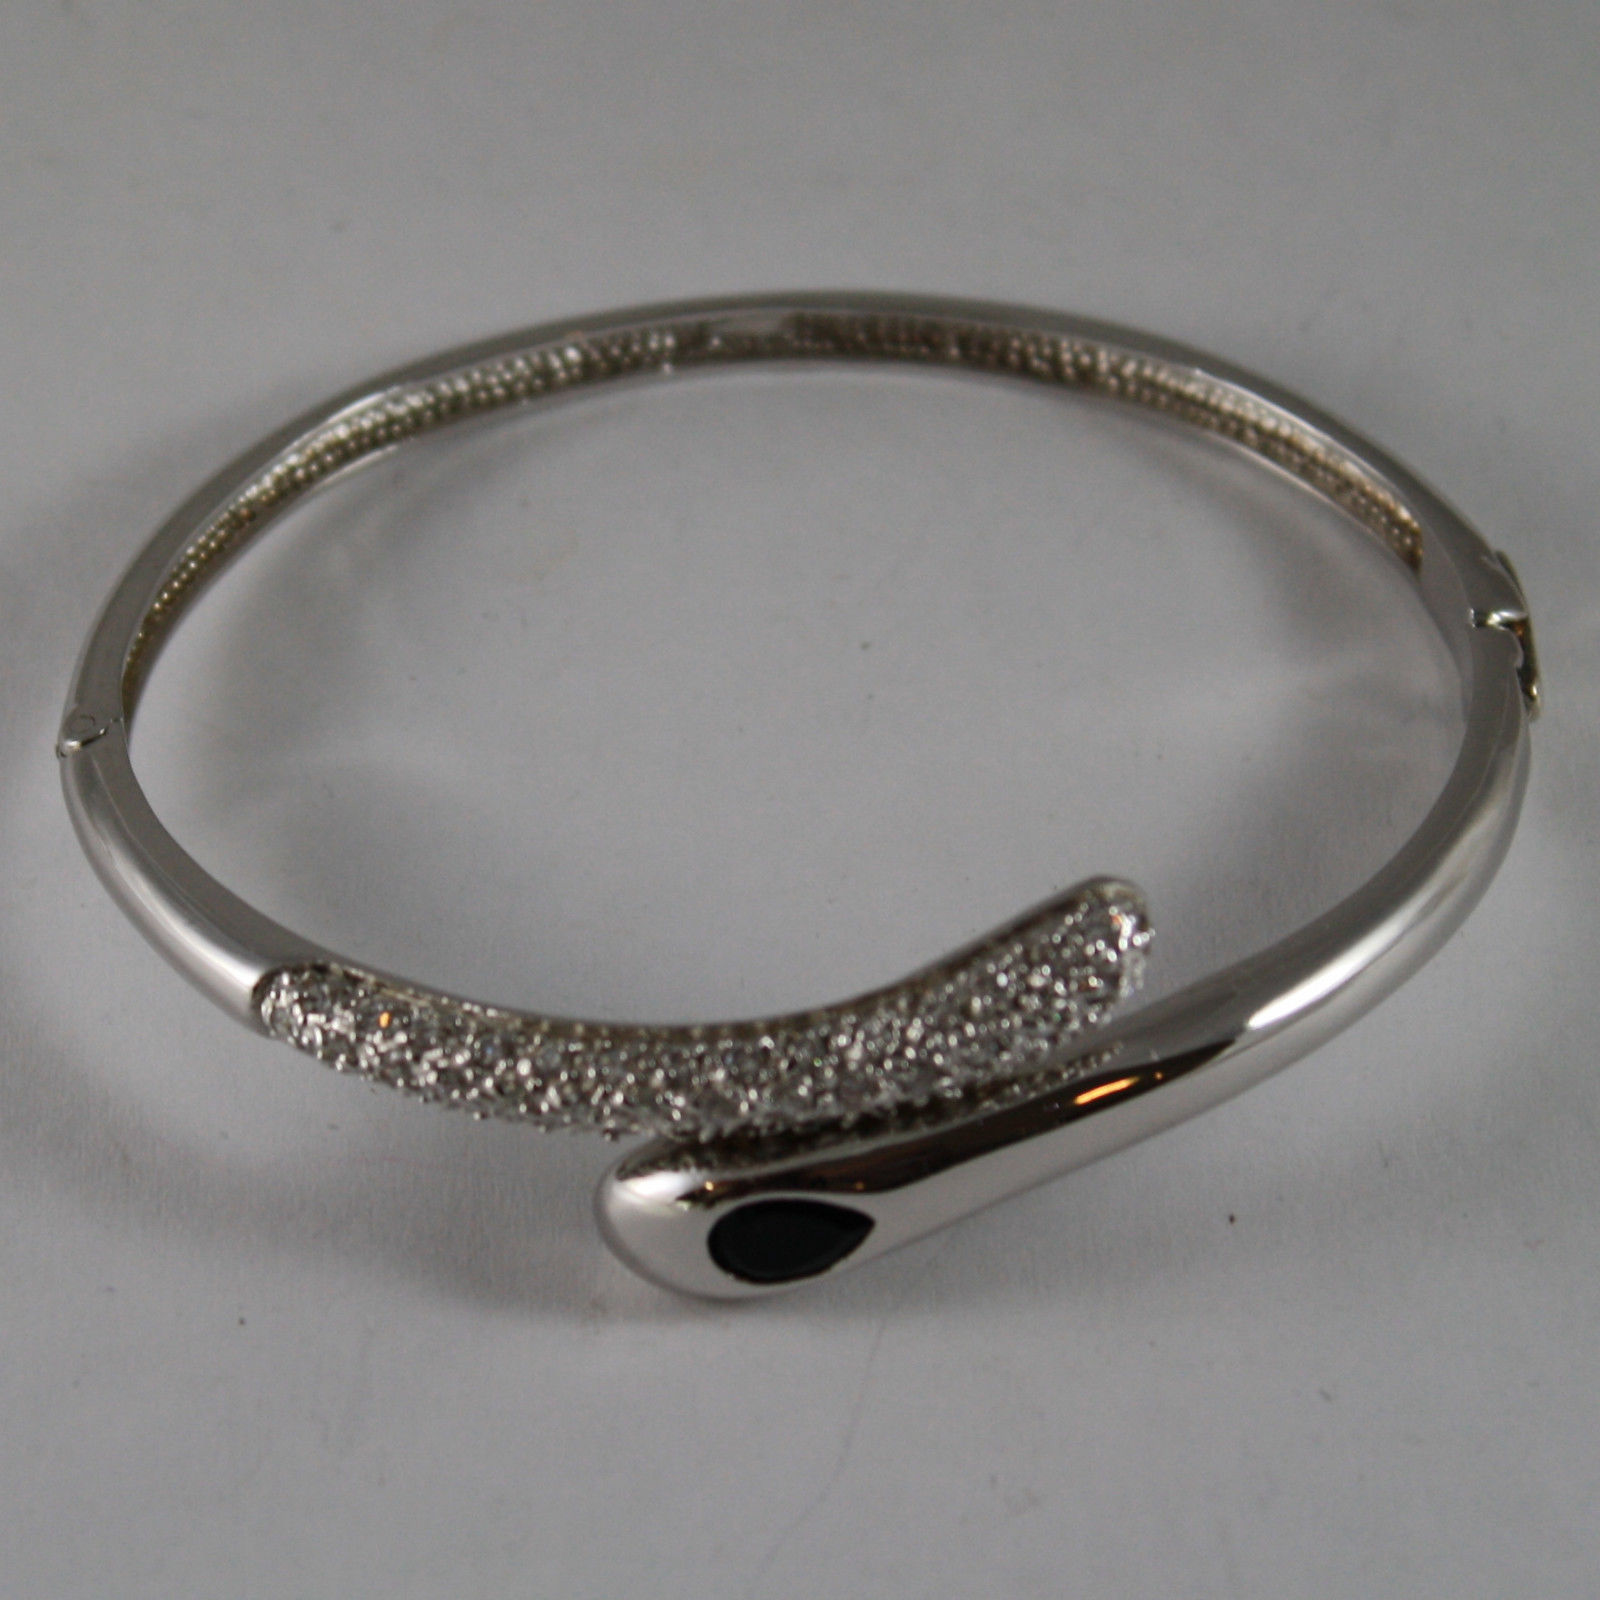 .925 RHODIUM SILVER RIGID BRACELET WITH BLACK CRYSTALS AND ZIRCONS